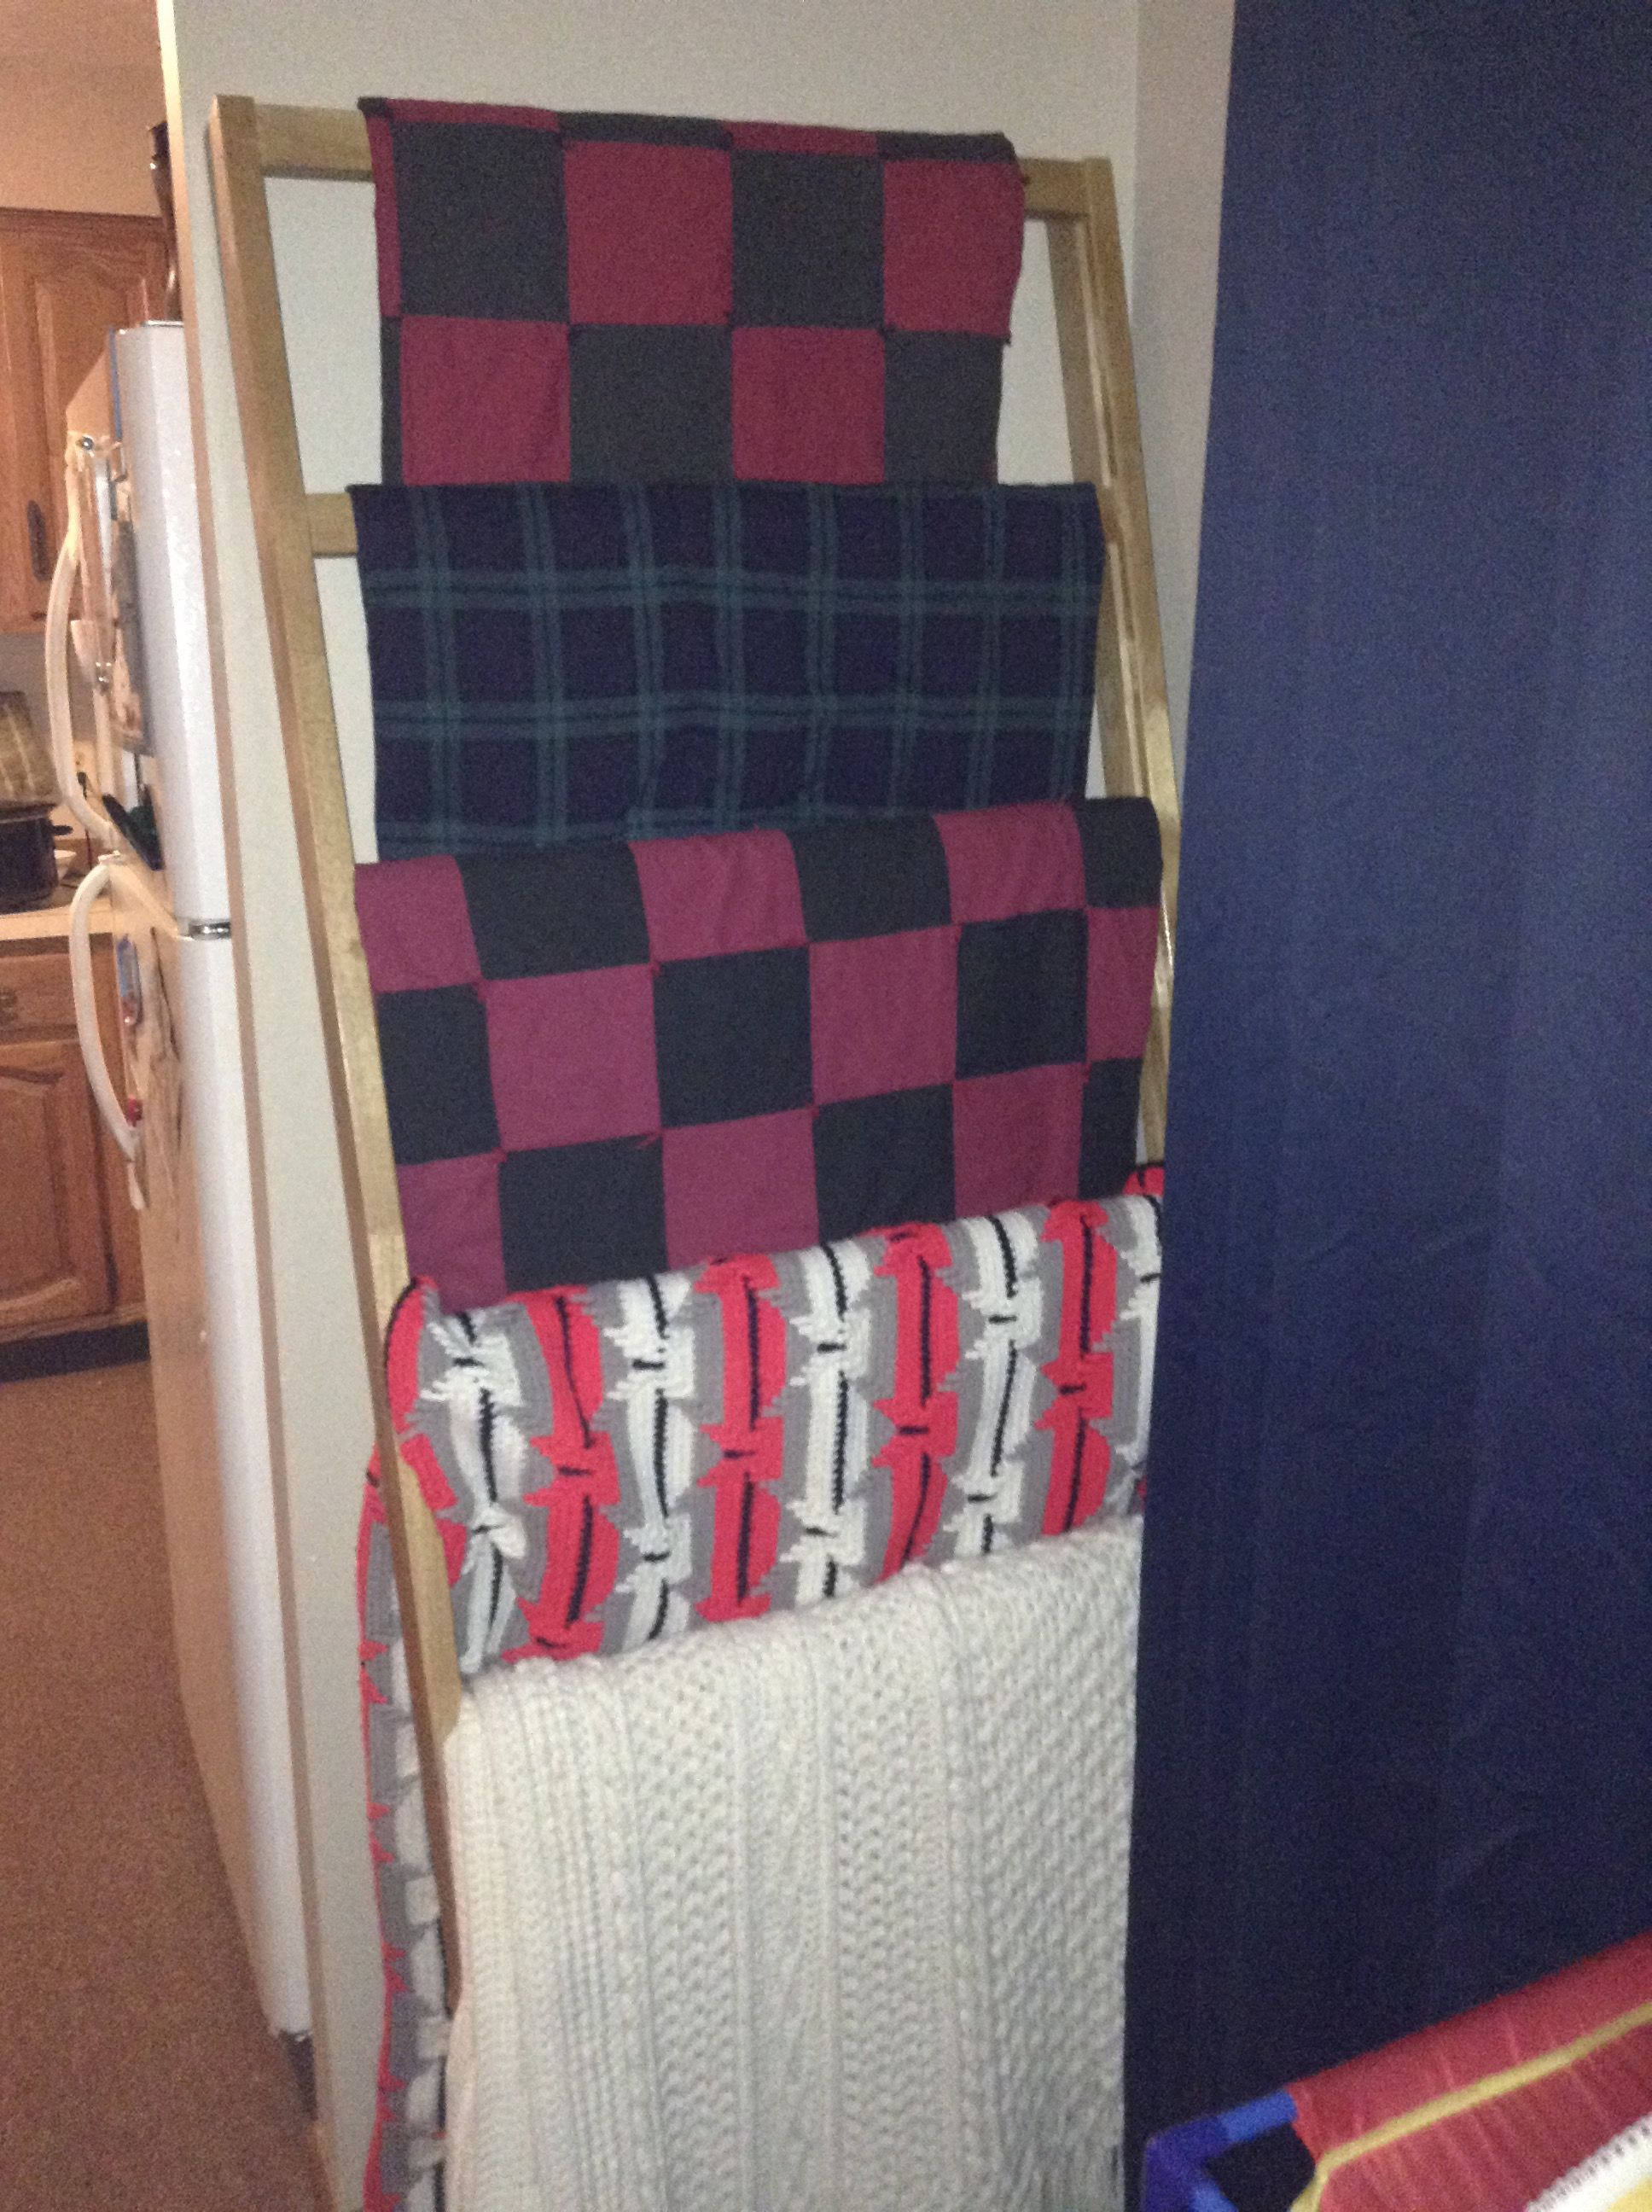 repurposed part of a broken futon frame into a throw blanket ladder  got the idea repurposed part of a broken futon frame into a throw blanket      rh   pinterest